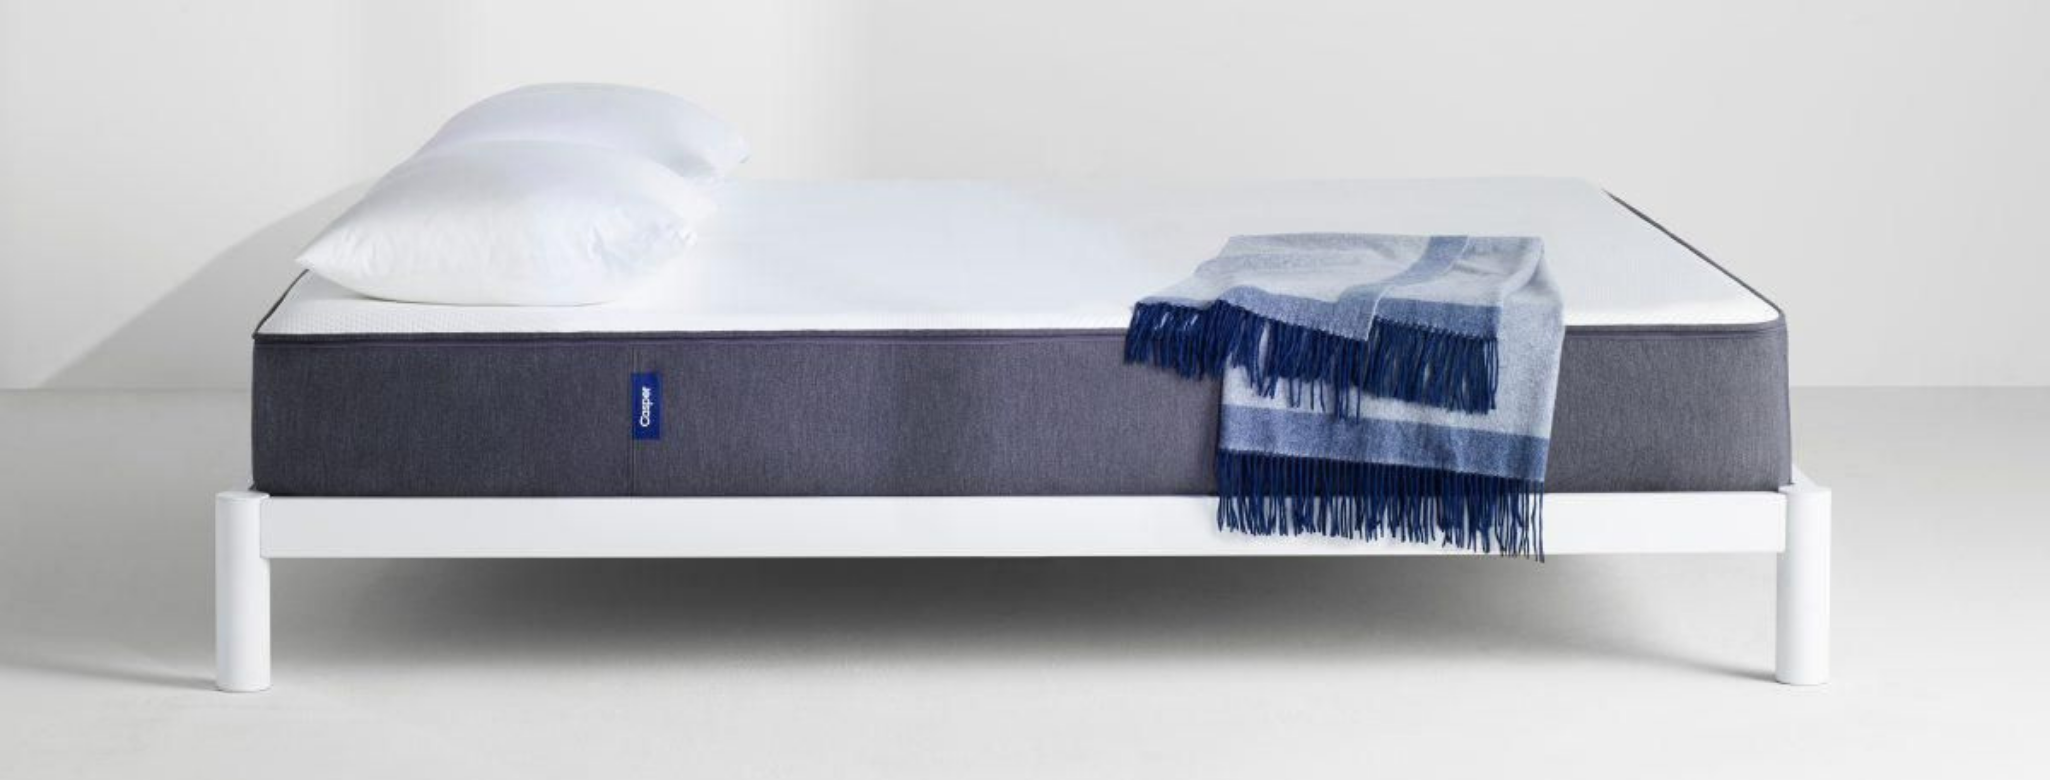 Save Big on a Mattress This MLK Weekend 🛏️